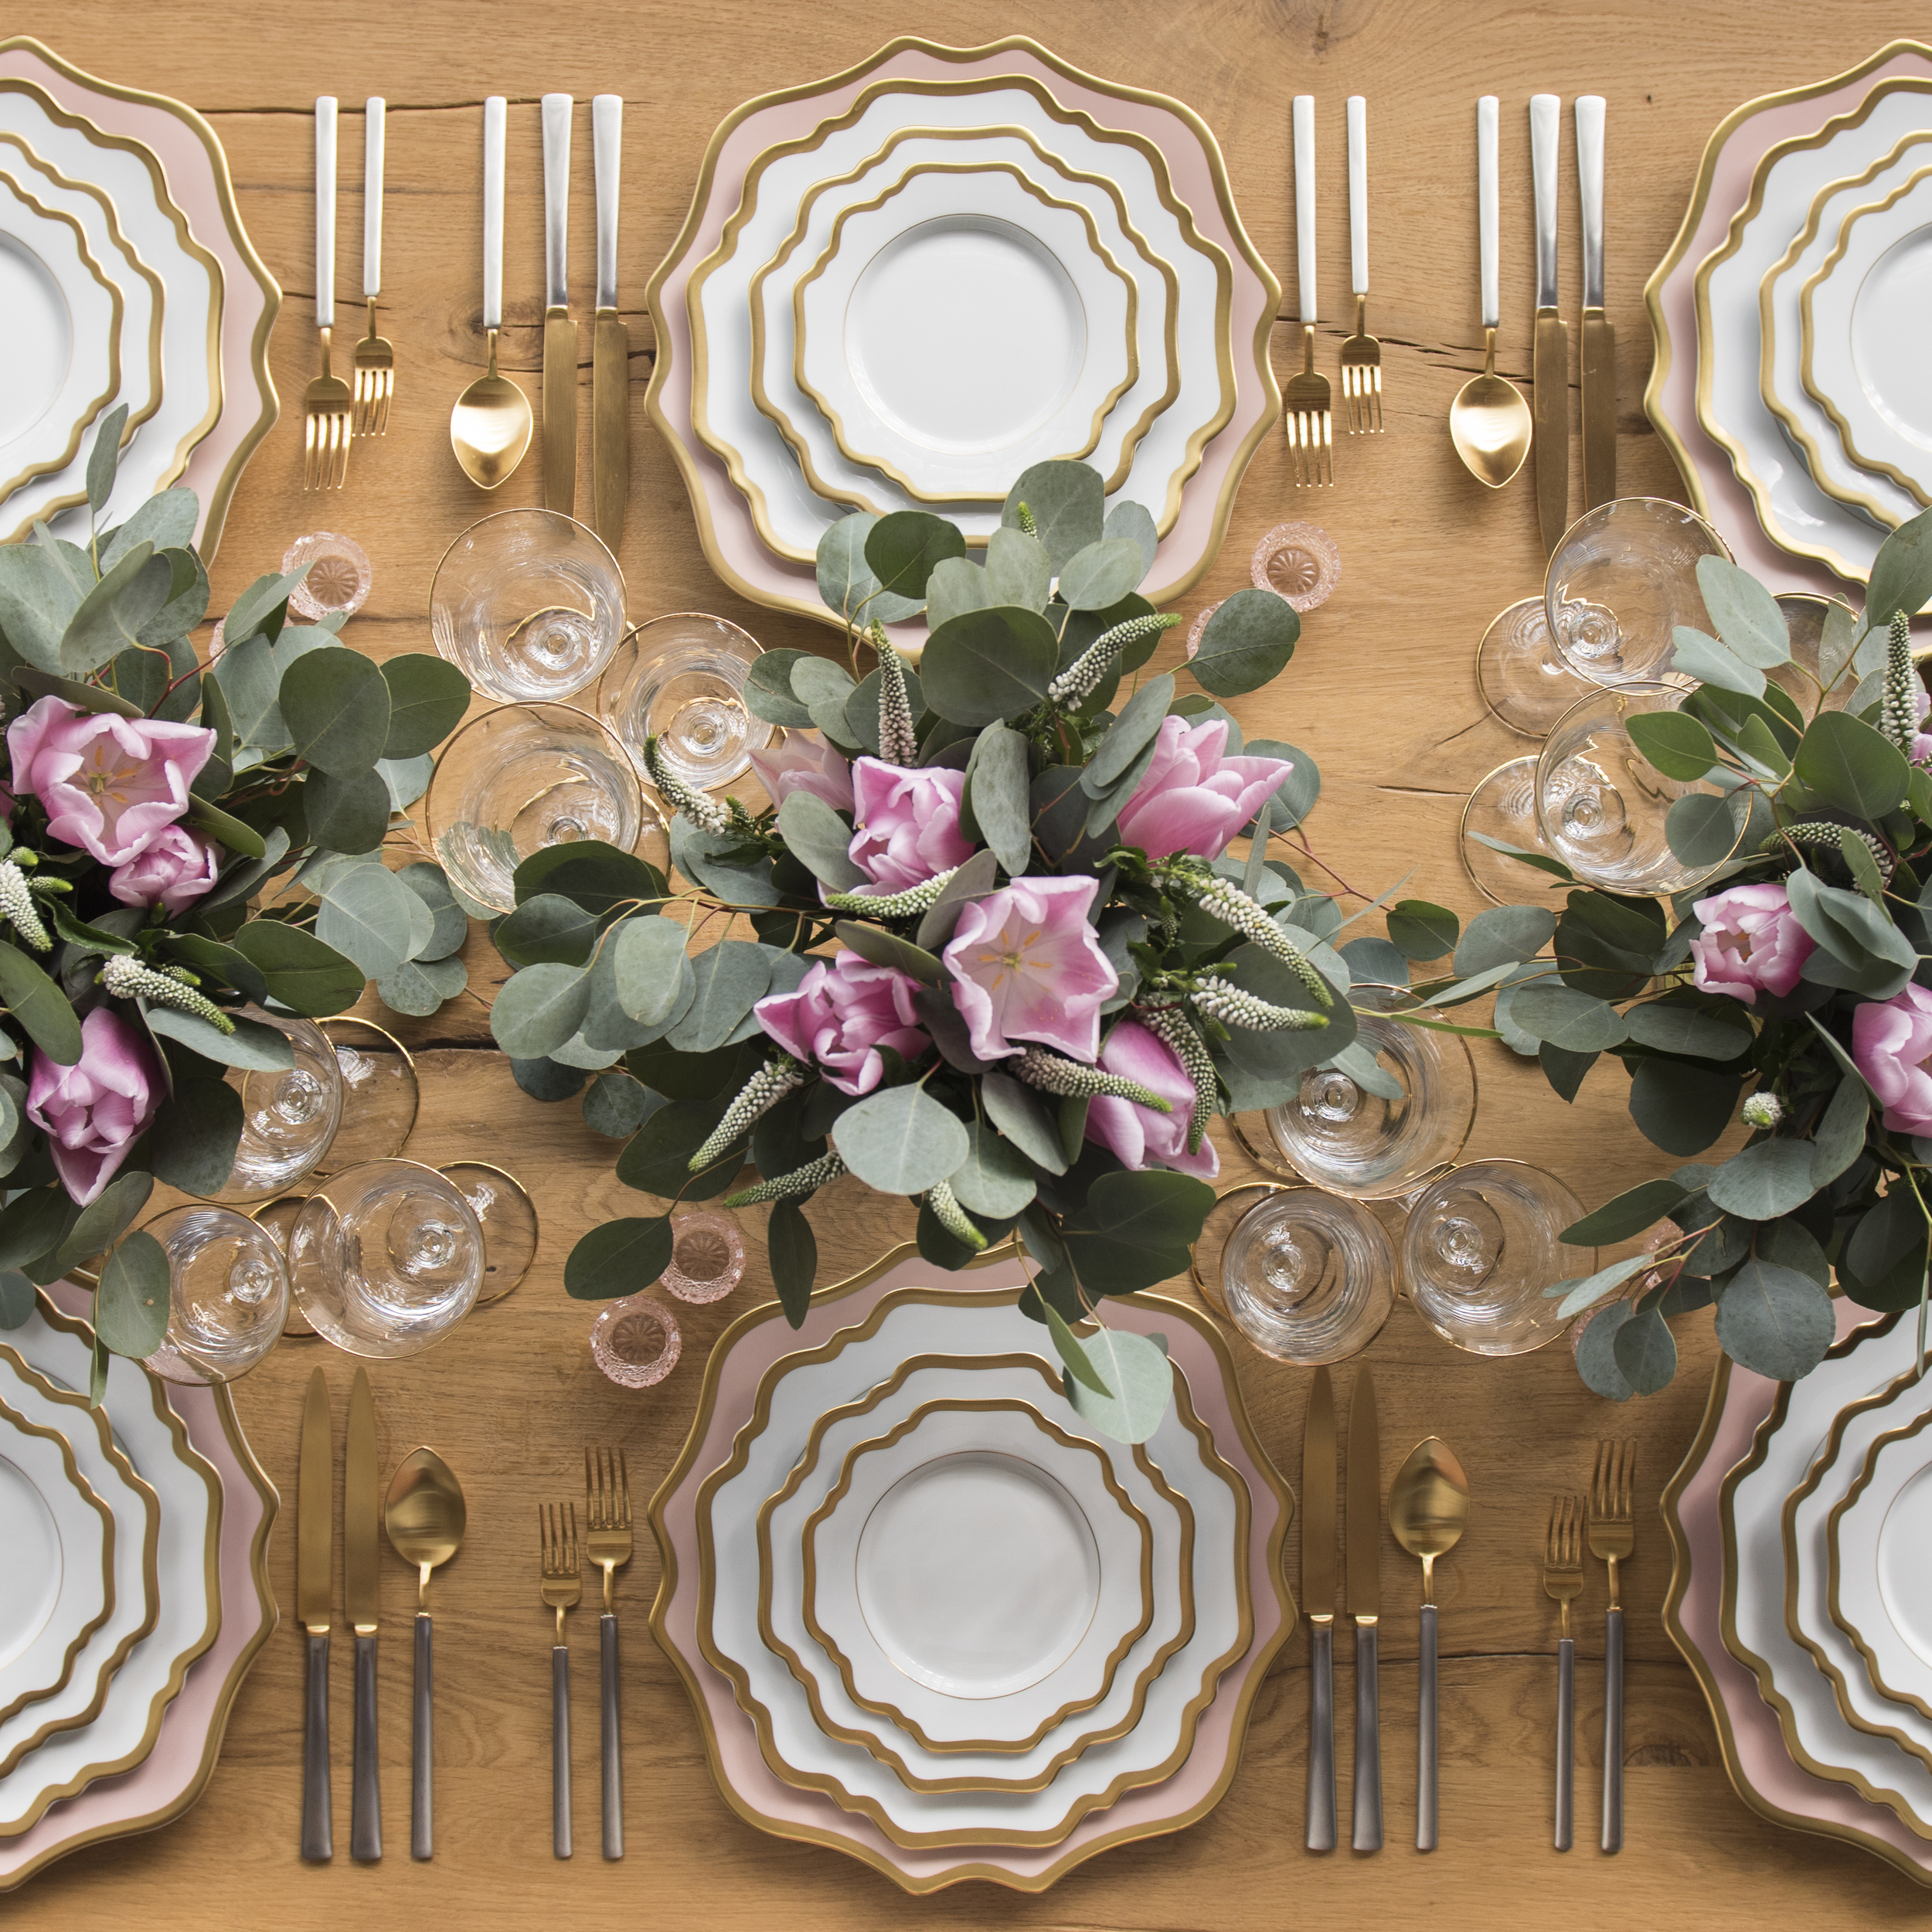 RENT: Anna Weatherley Chargers in Desert Rose/Gold + Anna Weatherley Dinnerware in White/Gold + Axel Flatware in Matte 24k Gold/Silver + Chloe 24k Gold Rimmed Stemware + Pink Crystal Salt Cellars  SHOP: Anna Weatherley Dinnerware in White/Gold + Chloe 24k Gold Rimmed Stemware